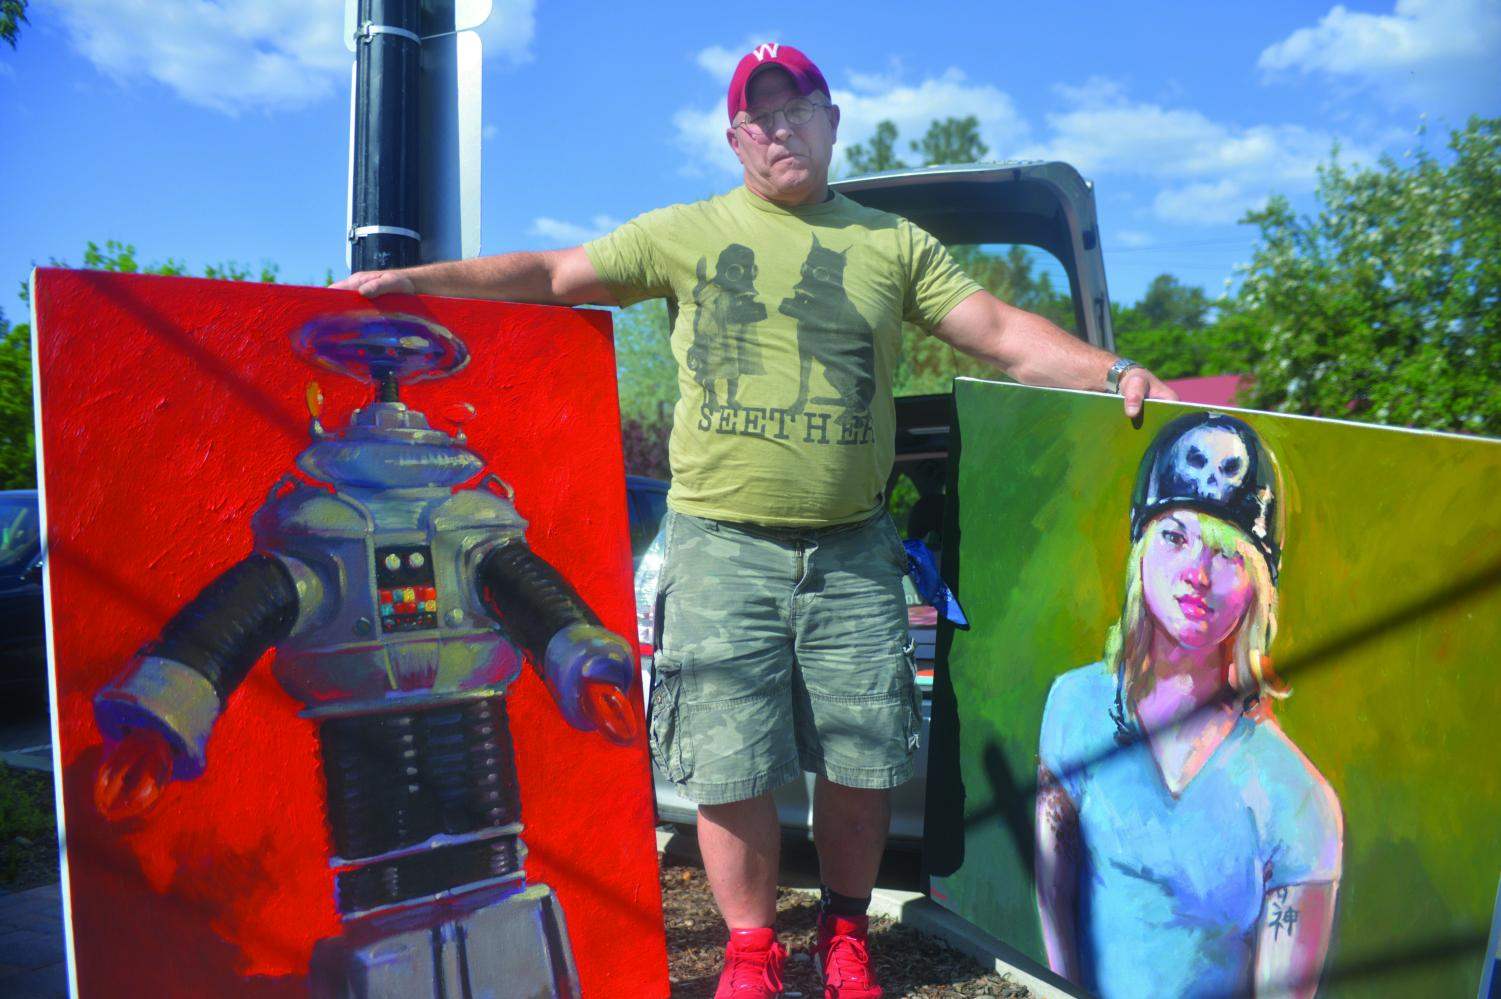 Henry Stinson, a local artist who has a painting studio in Pullman, holds some of his oil on canvas paintings that will be featured at the Neill Public Library during the ArtWalk.